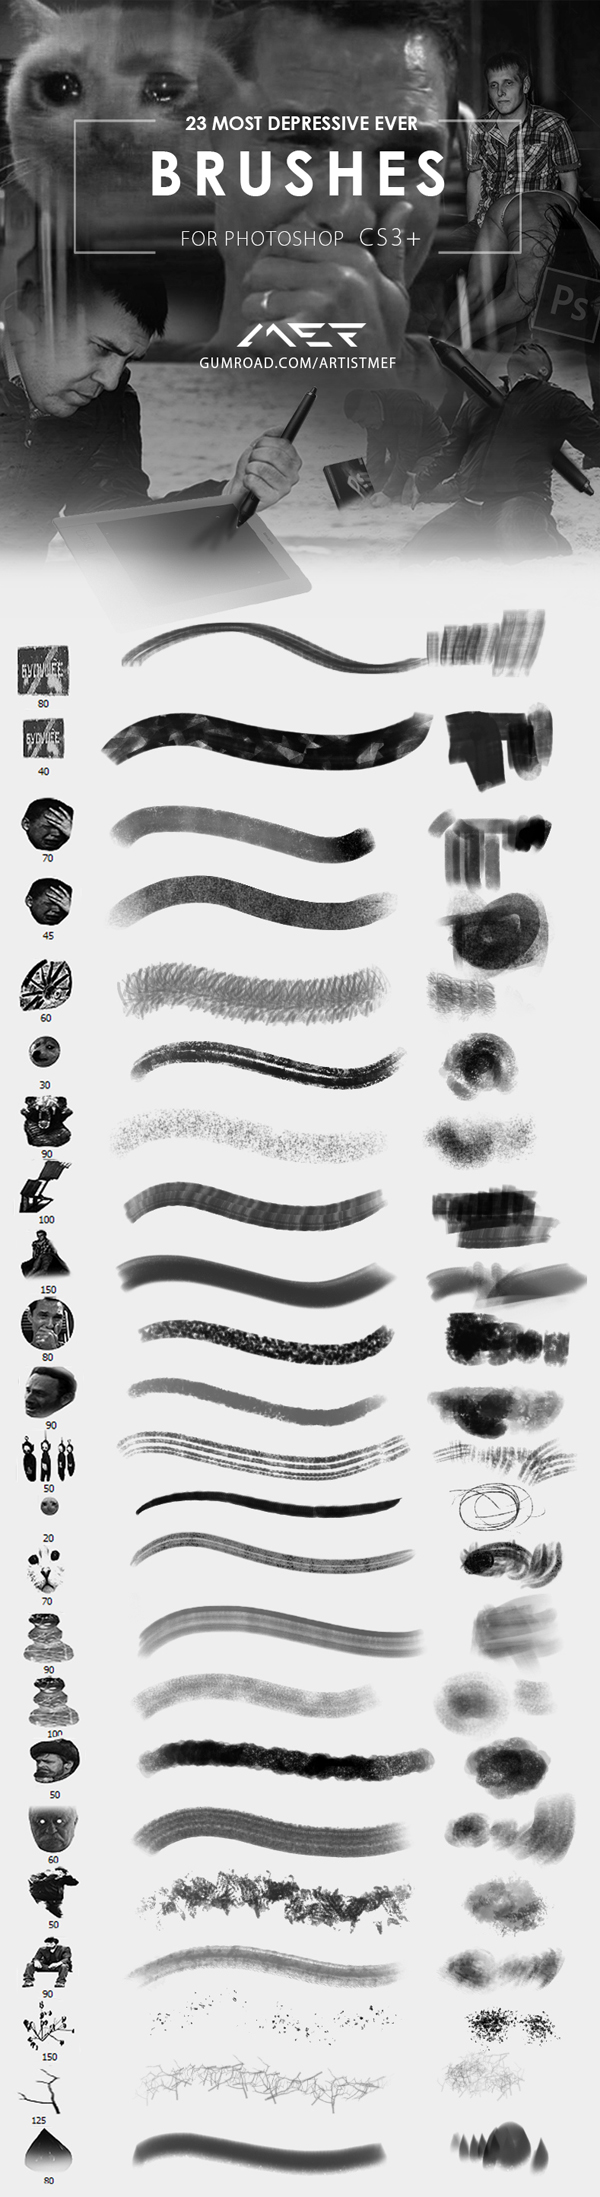 Free Most Depressive Photoshop Brushes (26 Brushes)